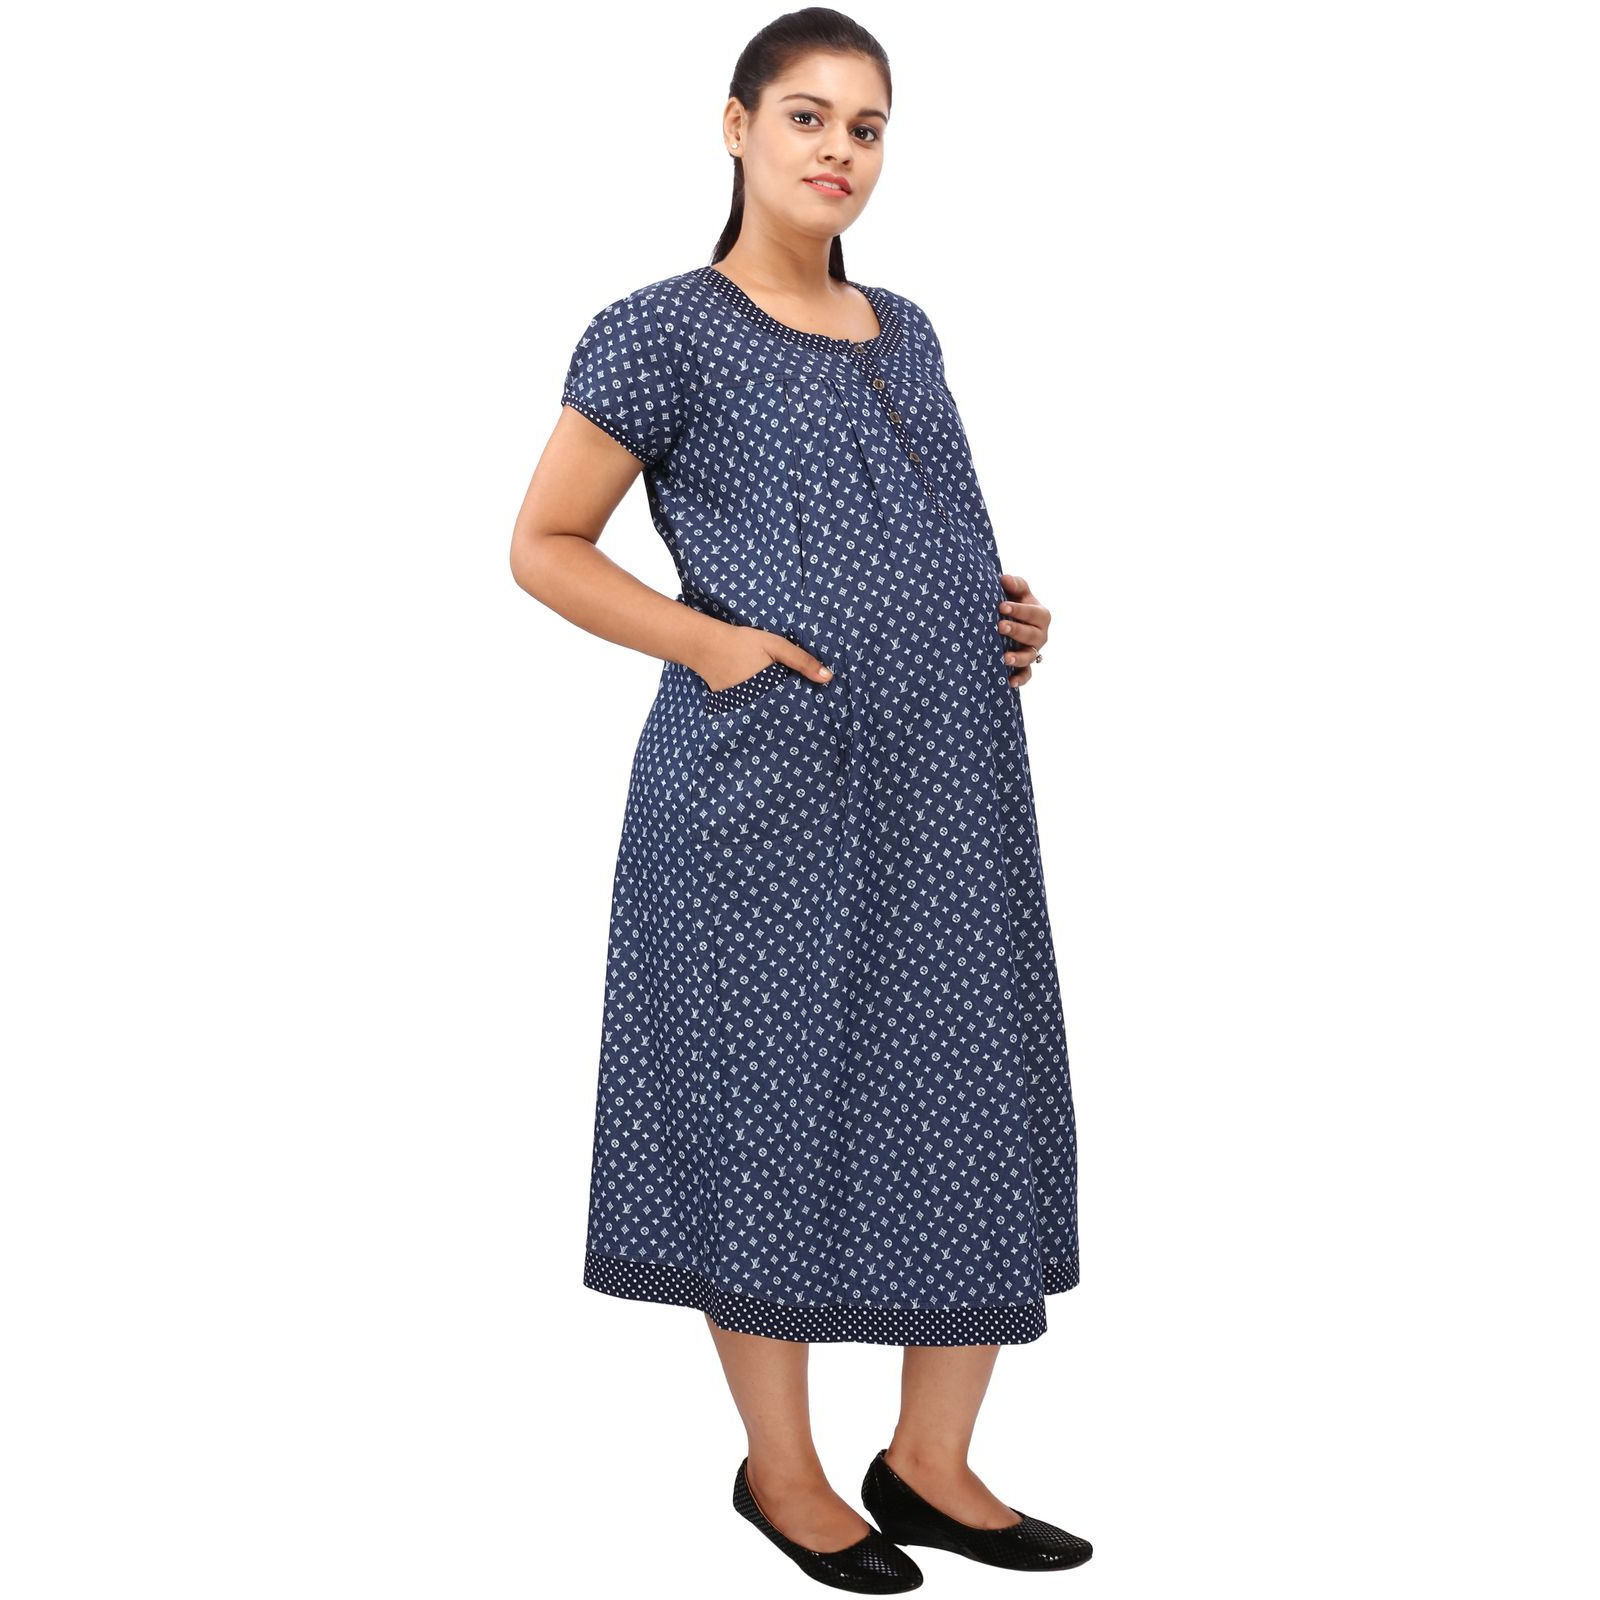 Mamma's Maternity Women's VL Printed Blue Denim Maternity Dress (Size:M)